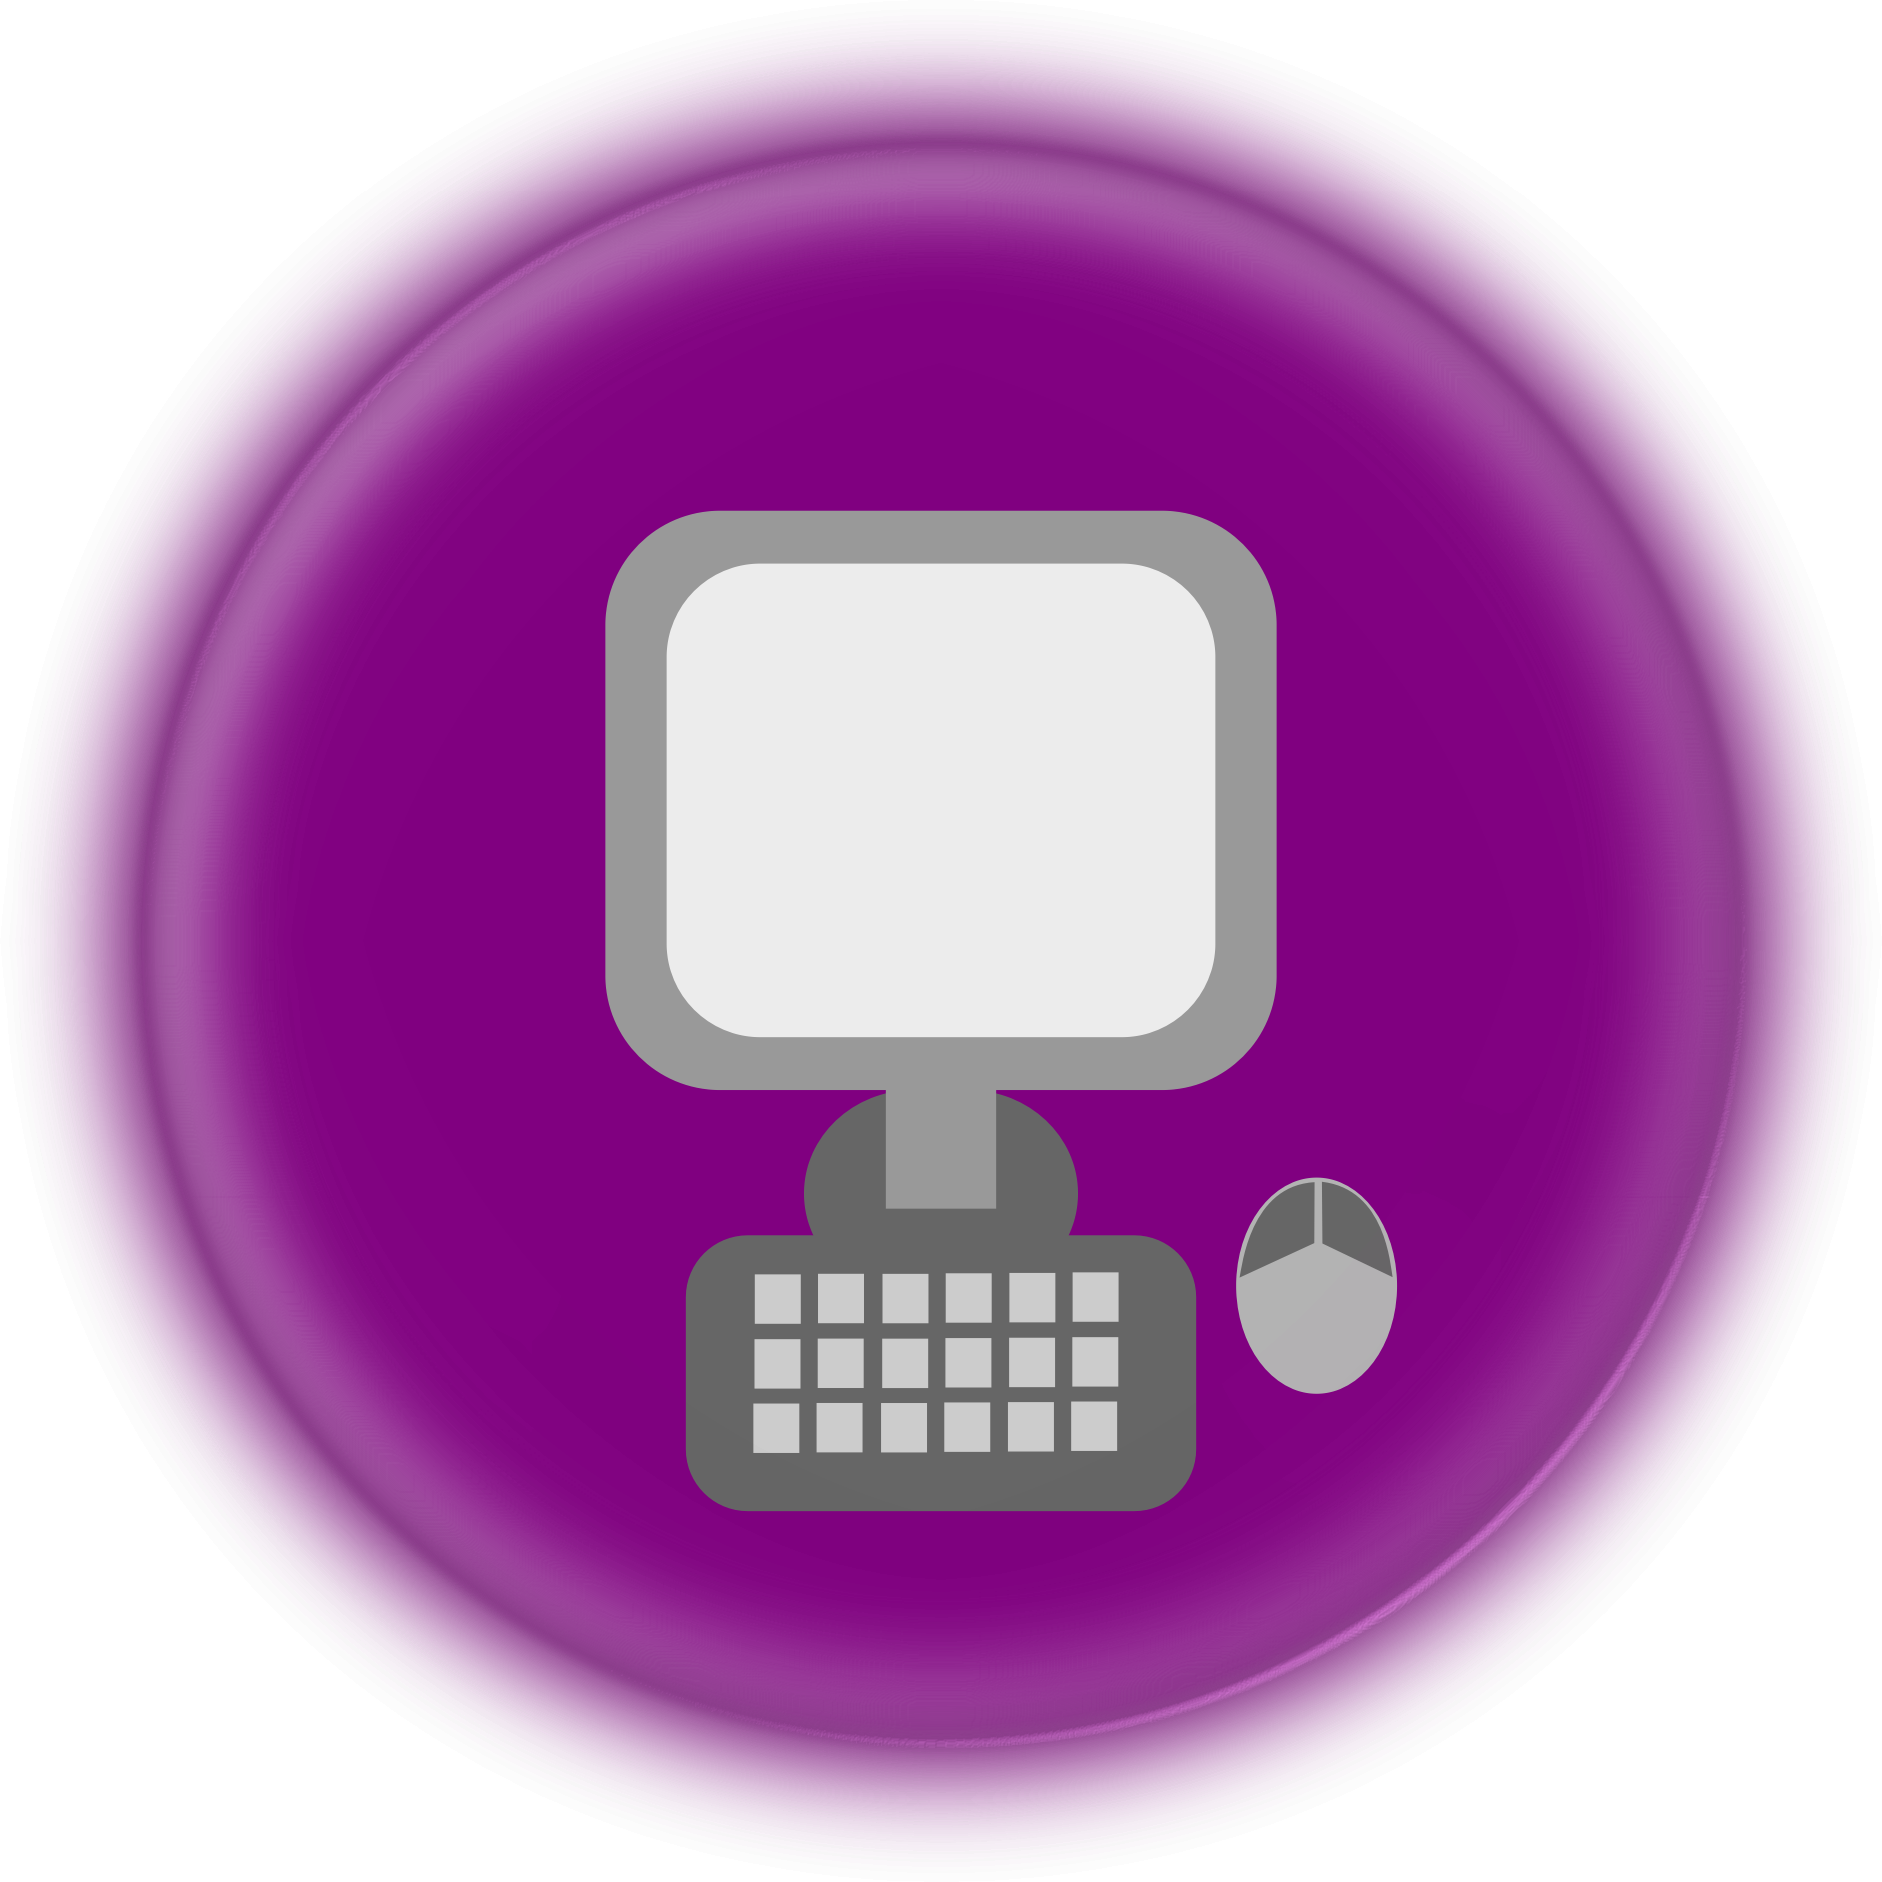 Computer Icon by isaiah658